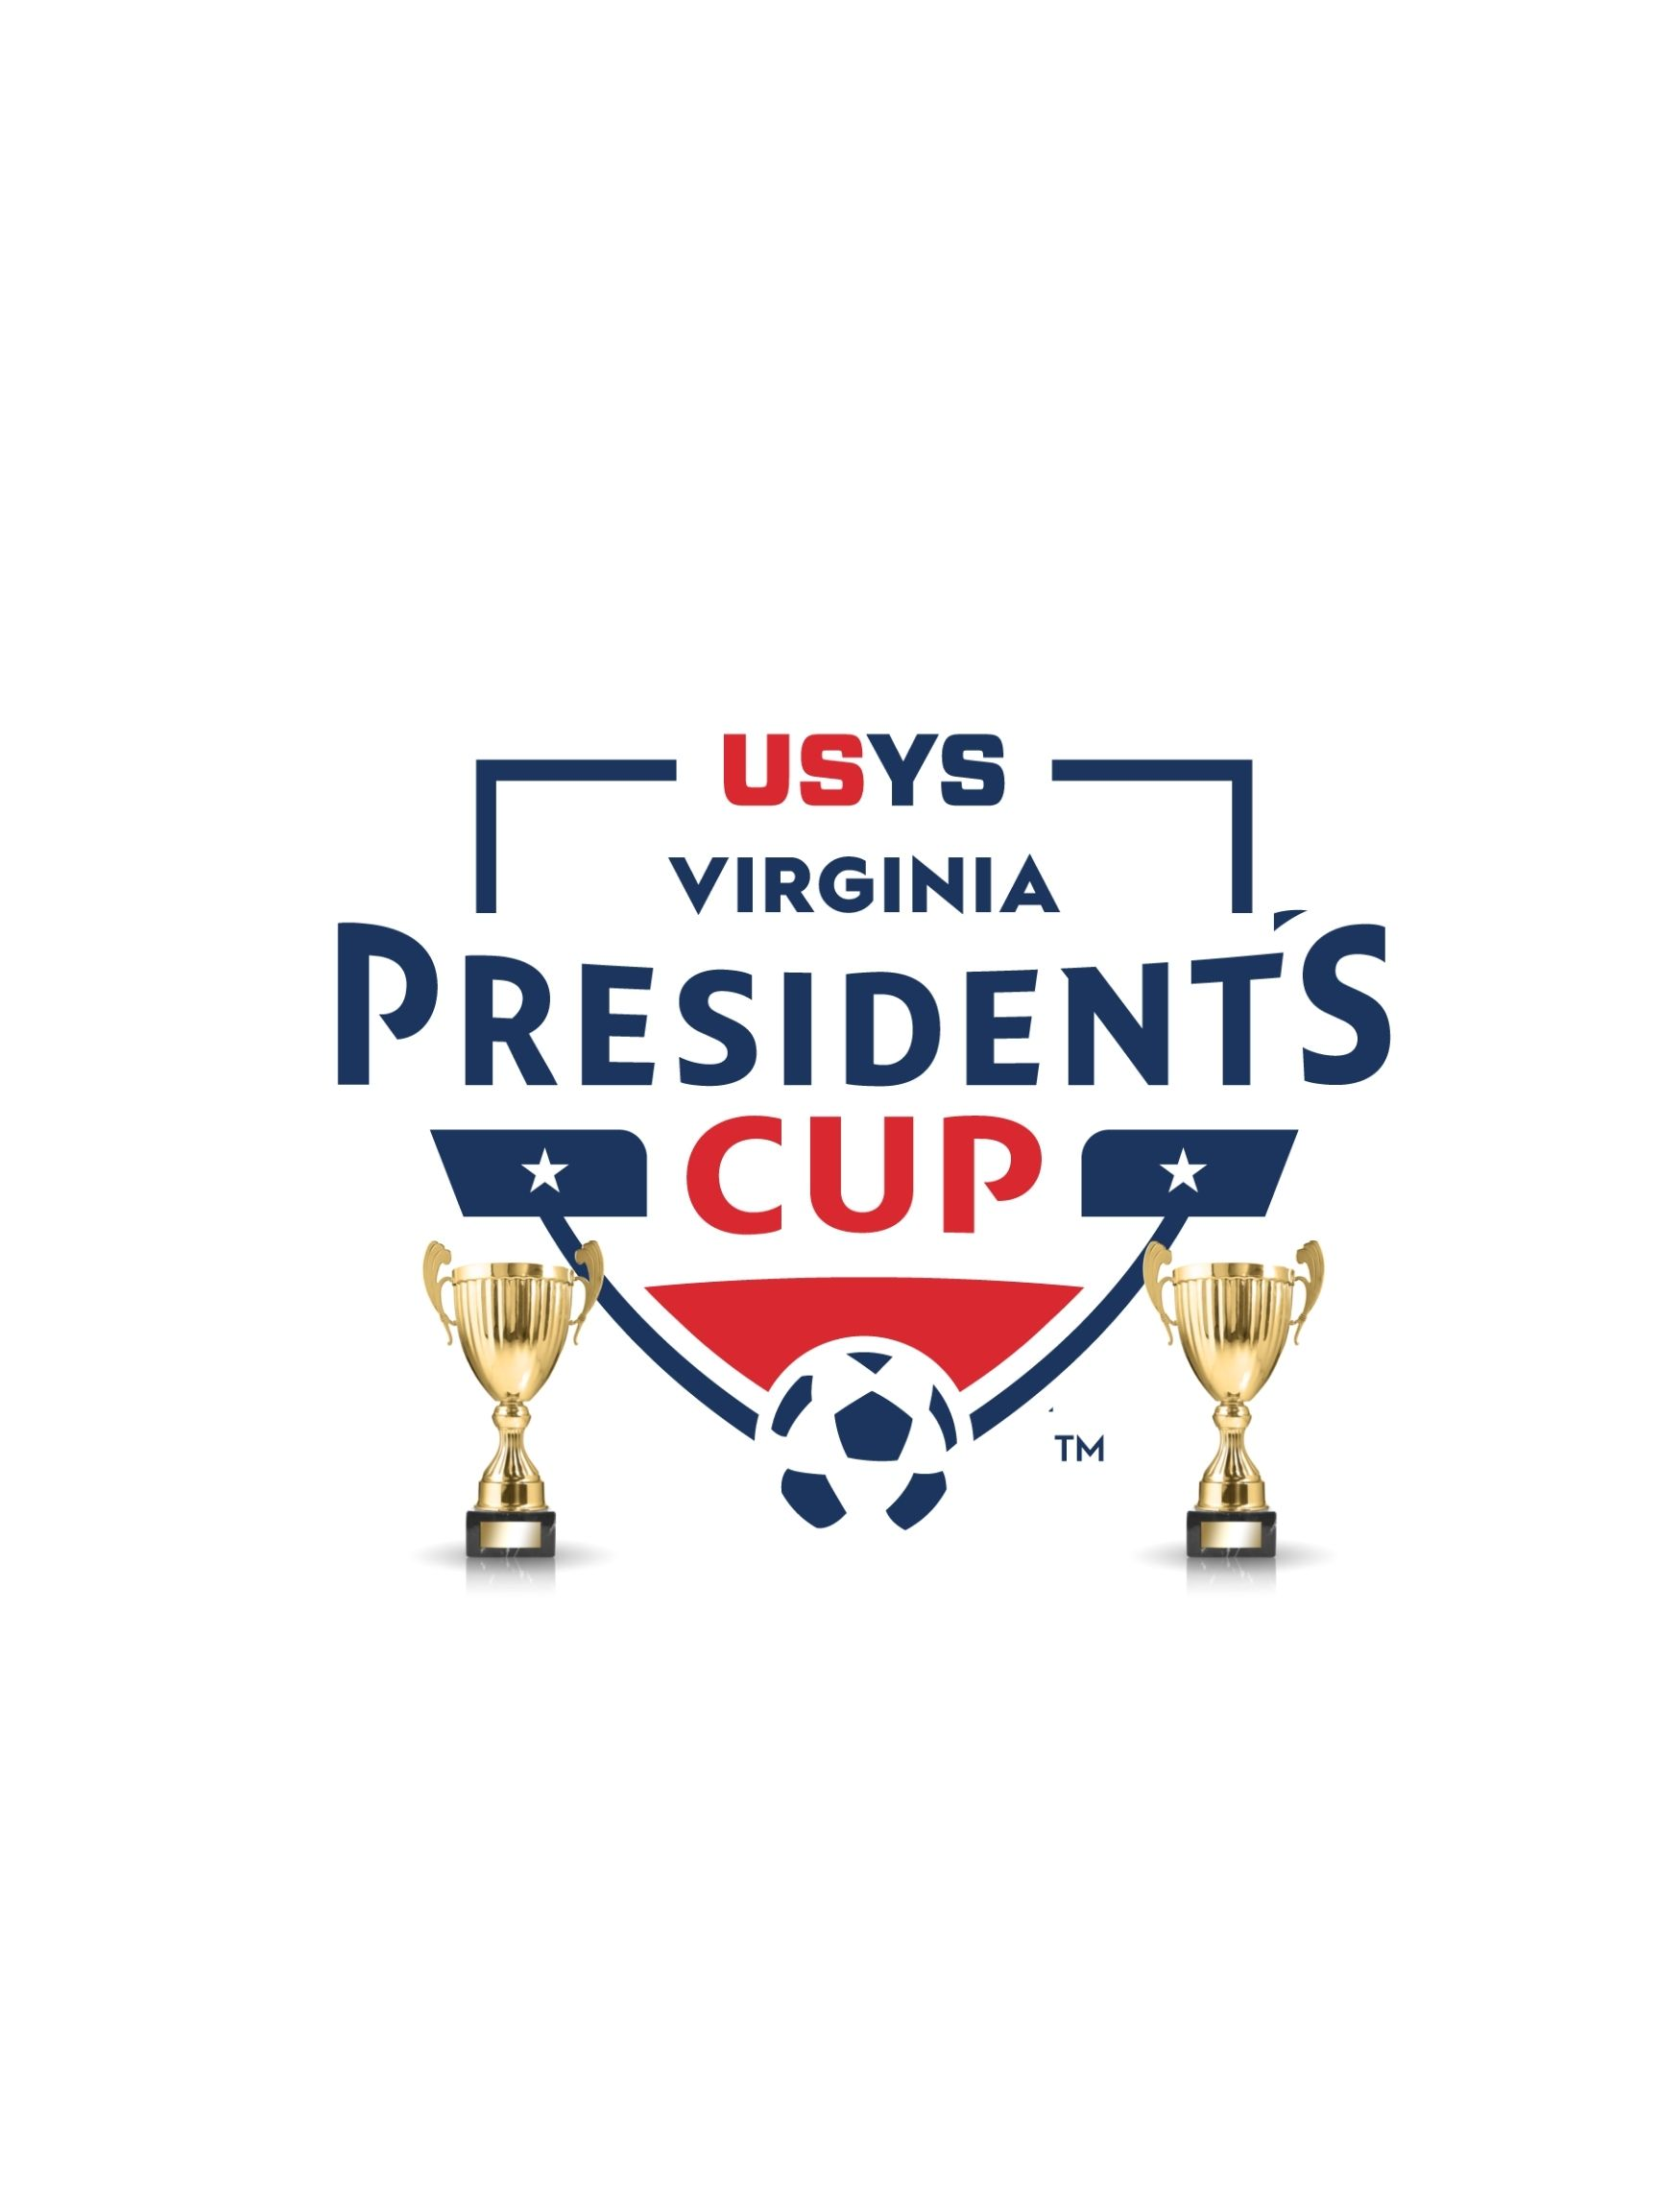 Presidents Cup Champions!